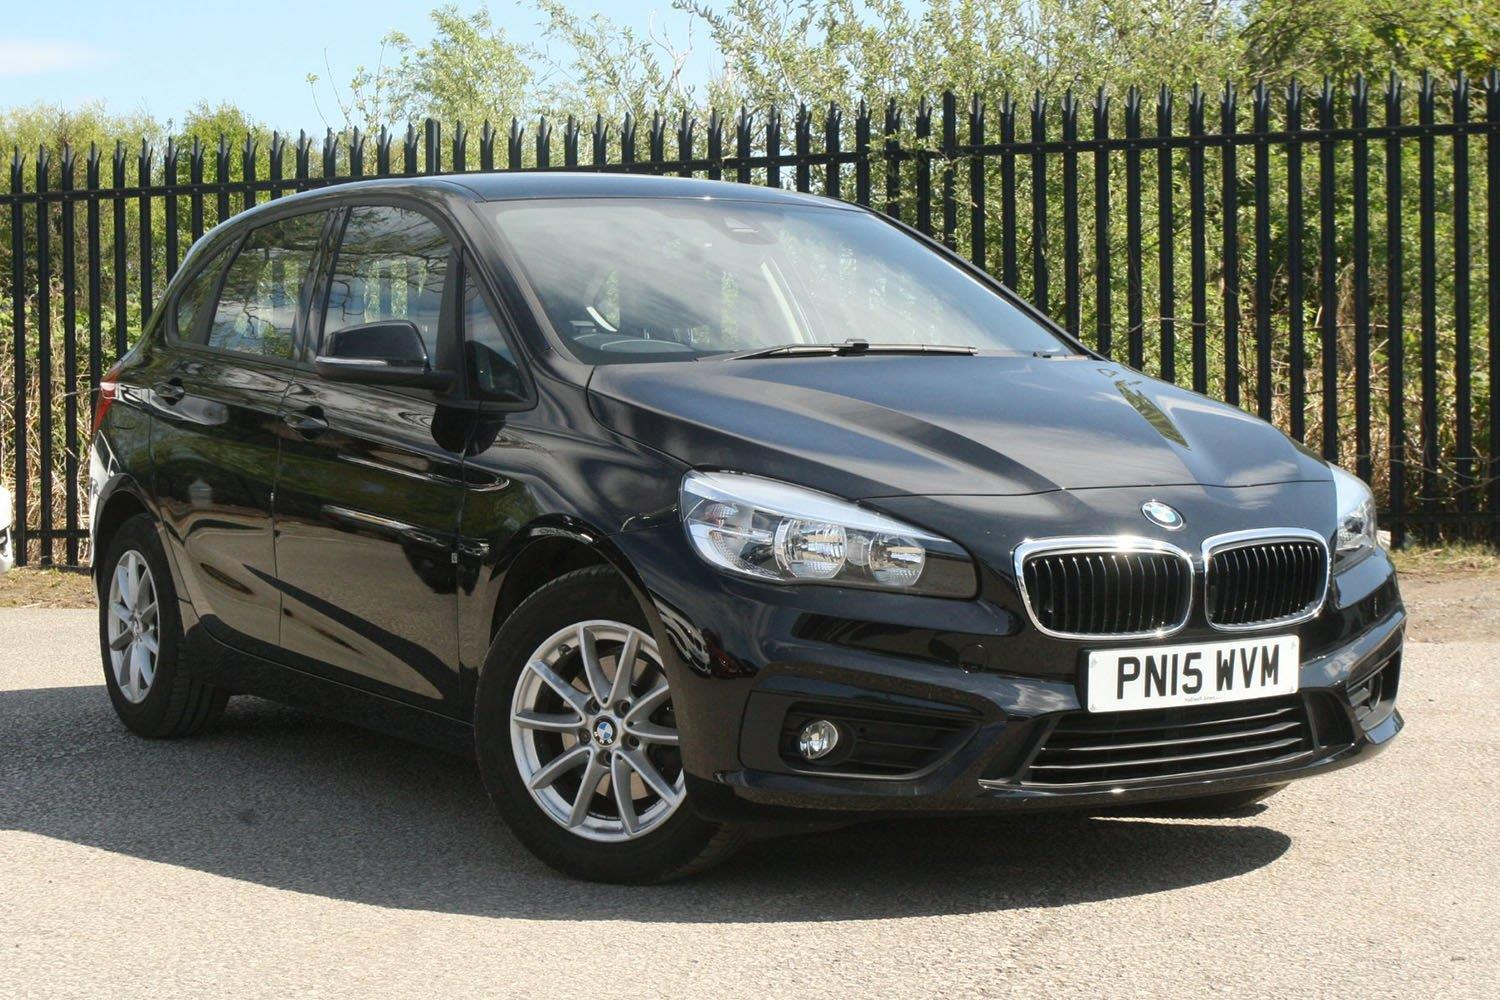 BMW 2 Series Active Tourer 5-Door PN15WVM - Image 10